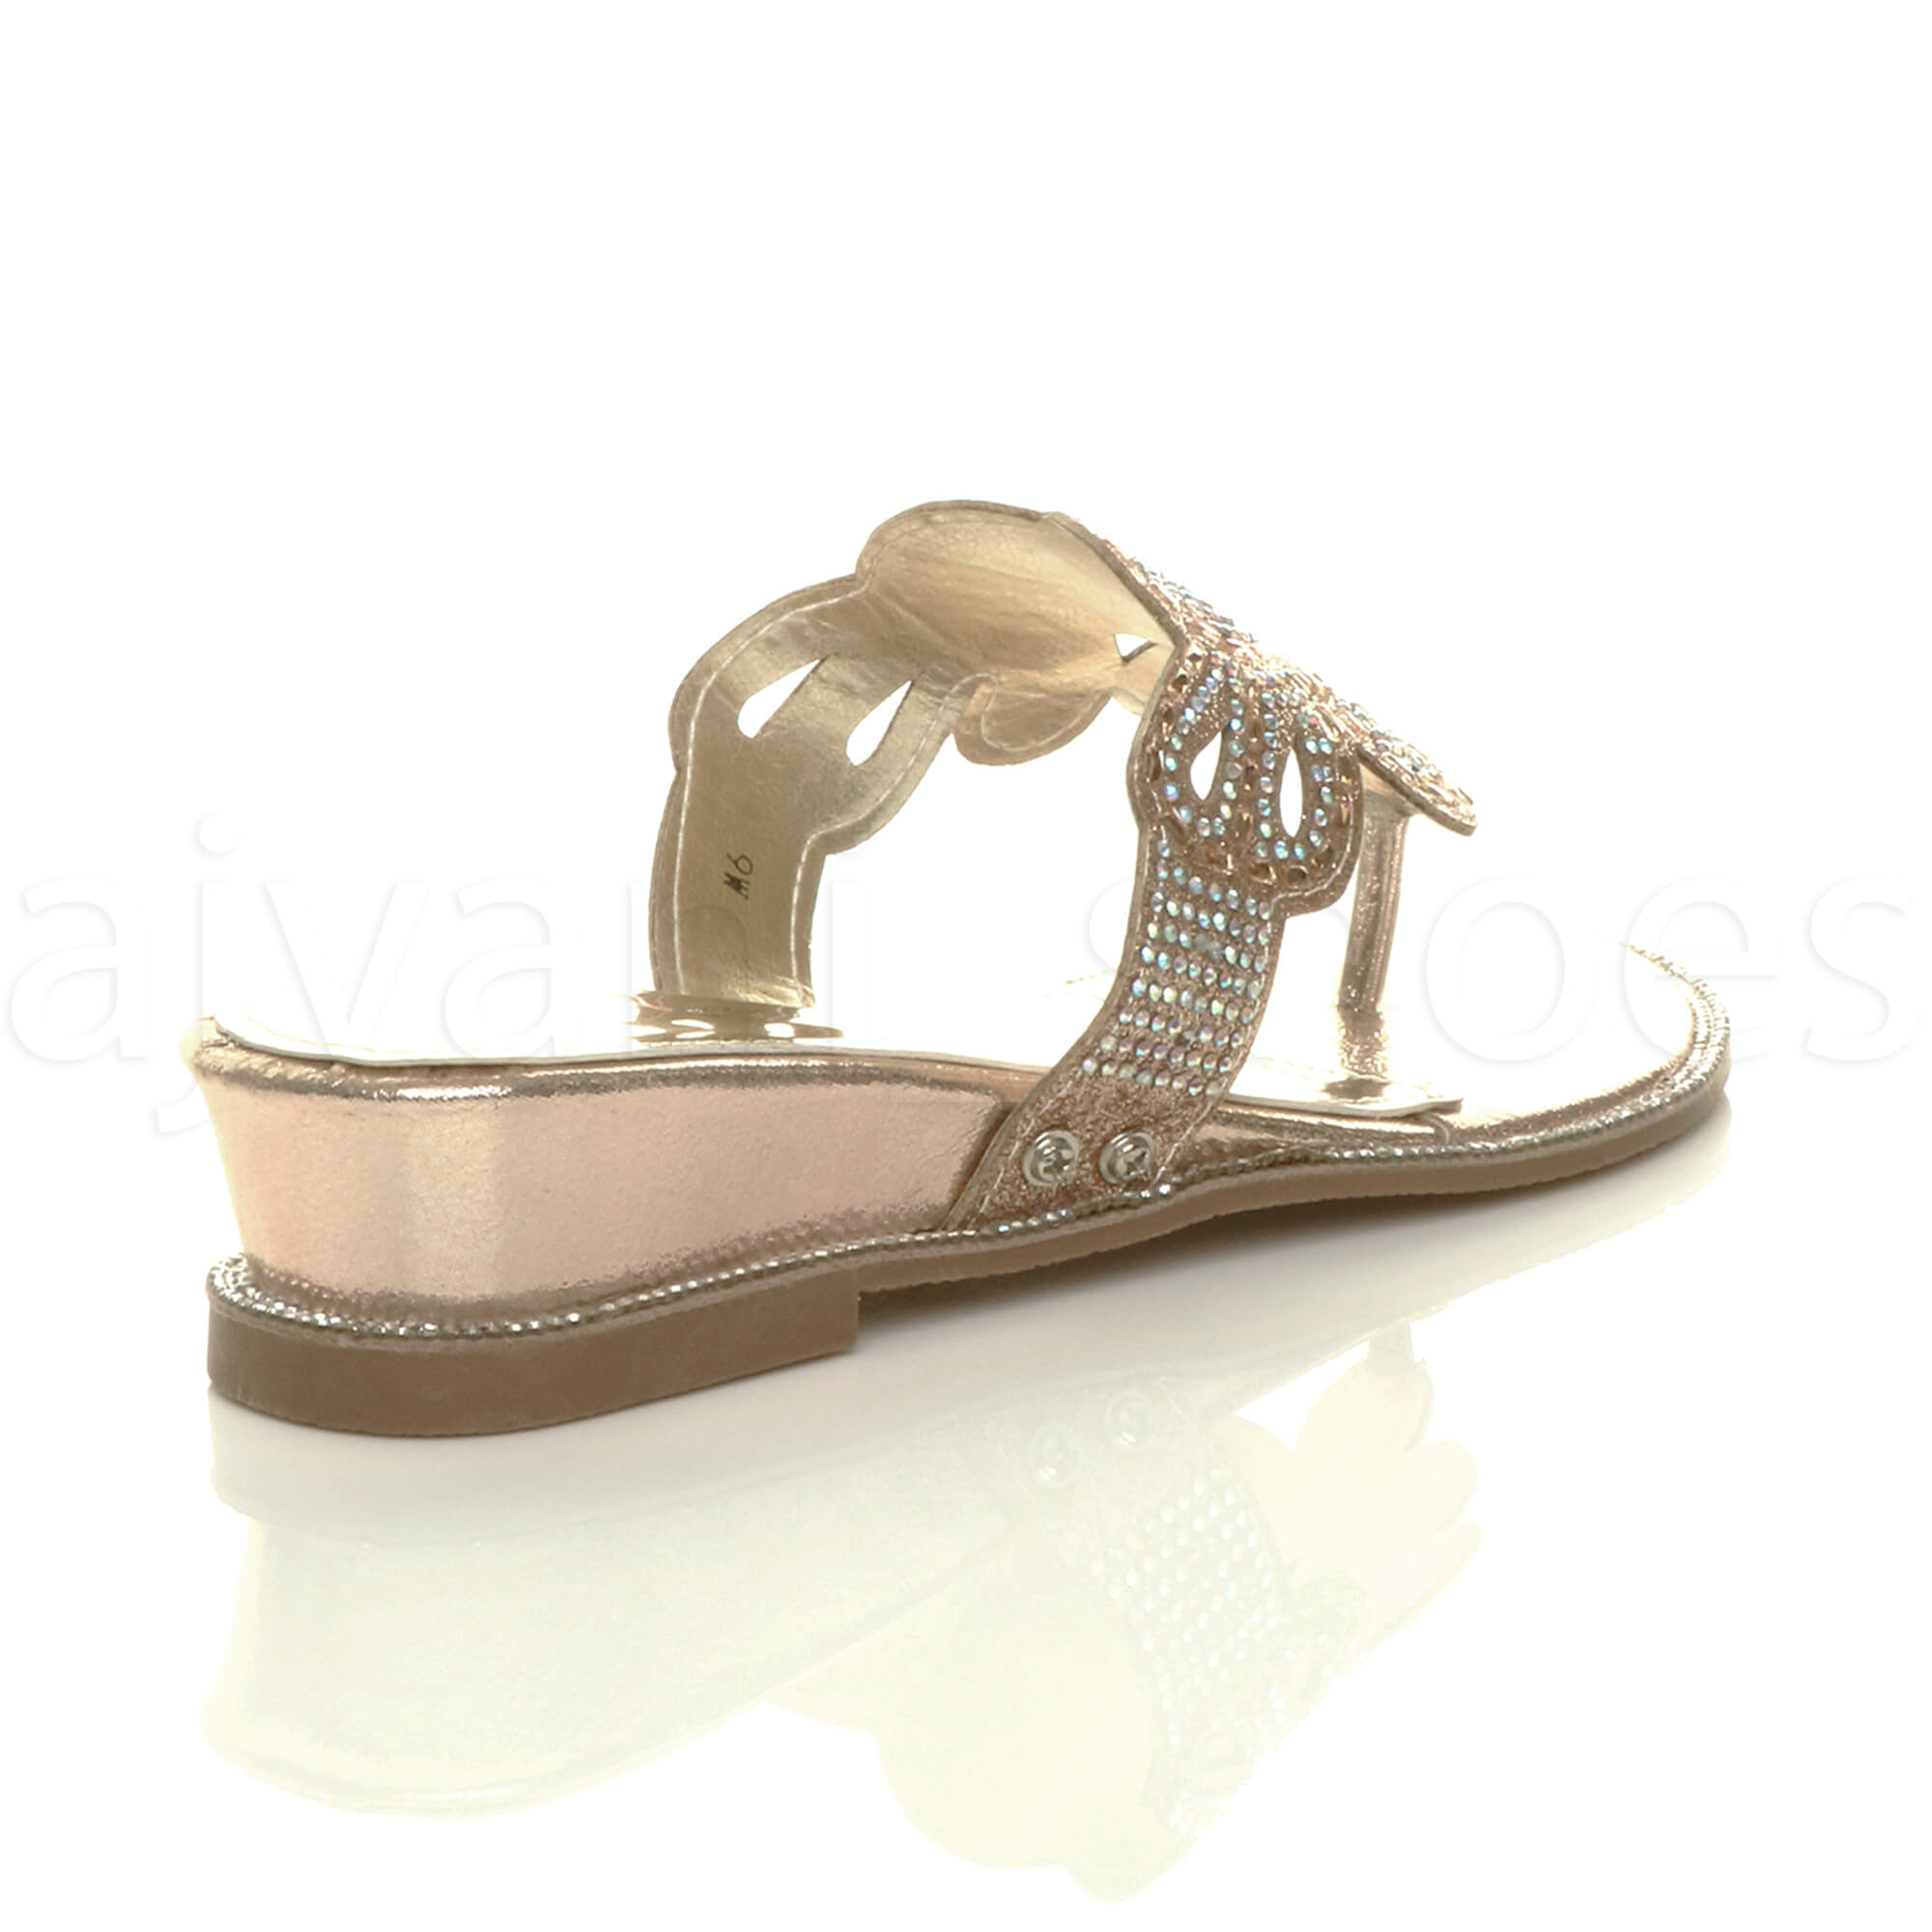 WOMENS-LADIES-LOW-MID-WEDGE-HEEL-DIAMANTE-EVENING-TOE-POST-SANDALS-MULES-SIZE thumbnail 13